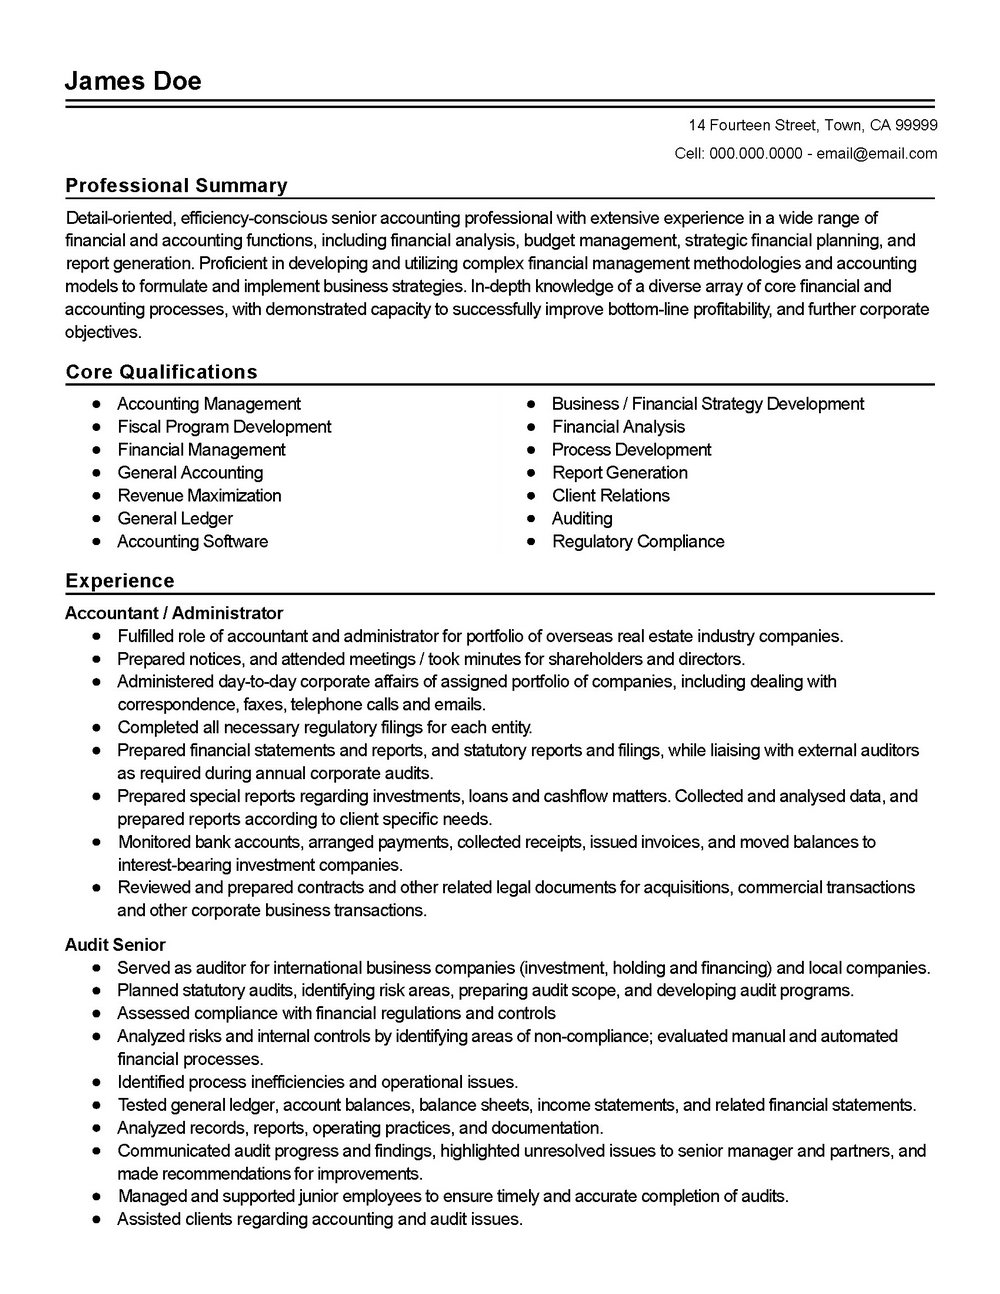 Resume Samples For Accounting Professionals